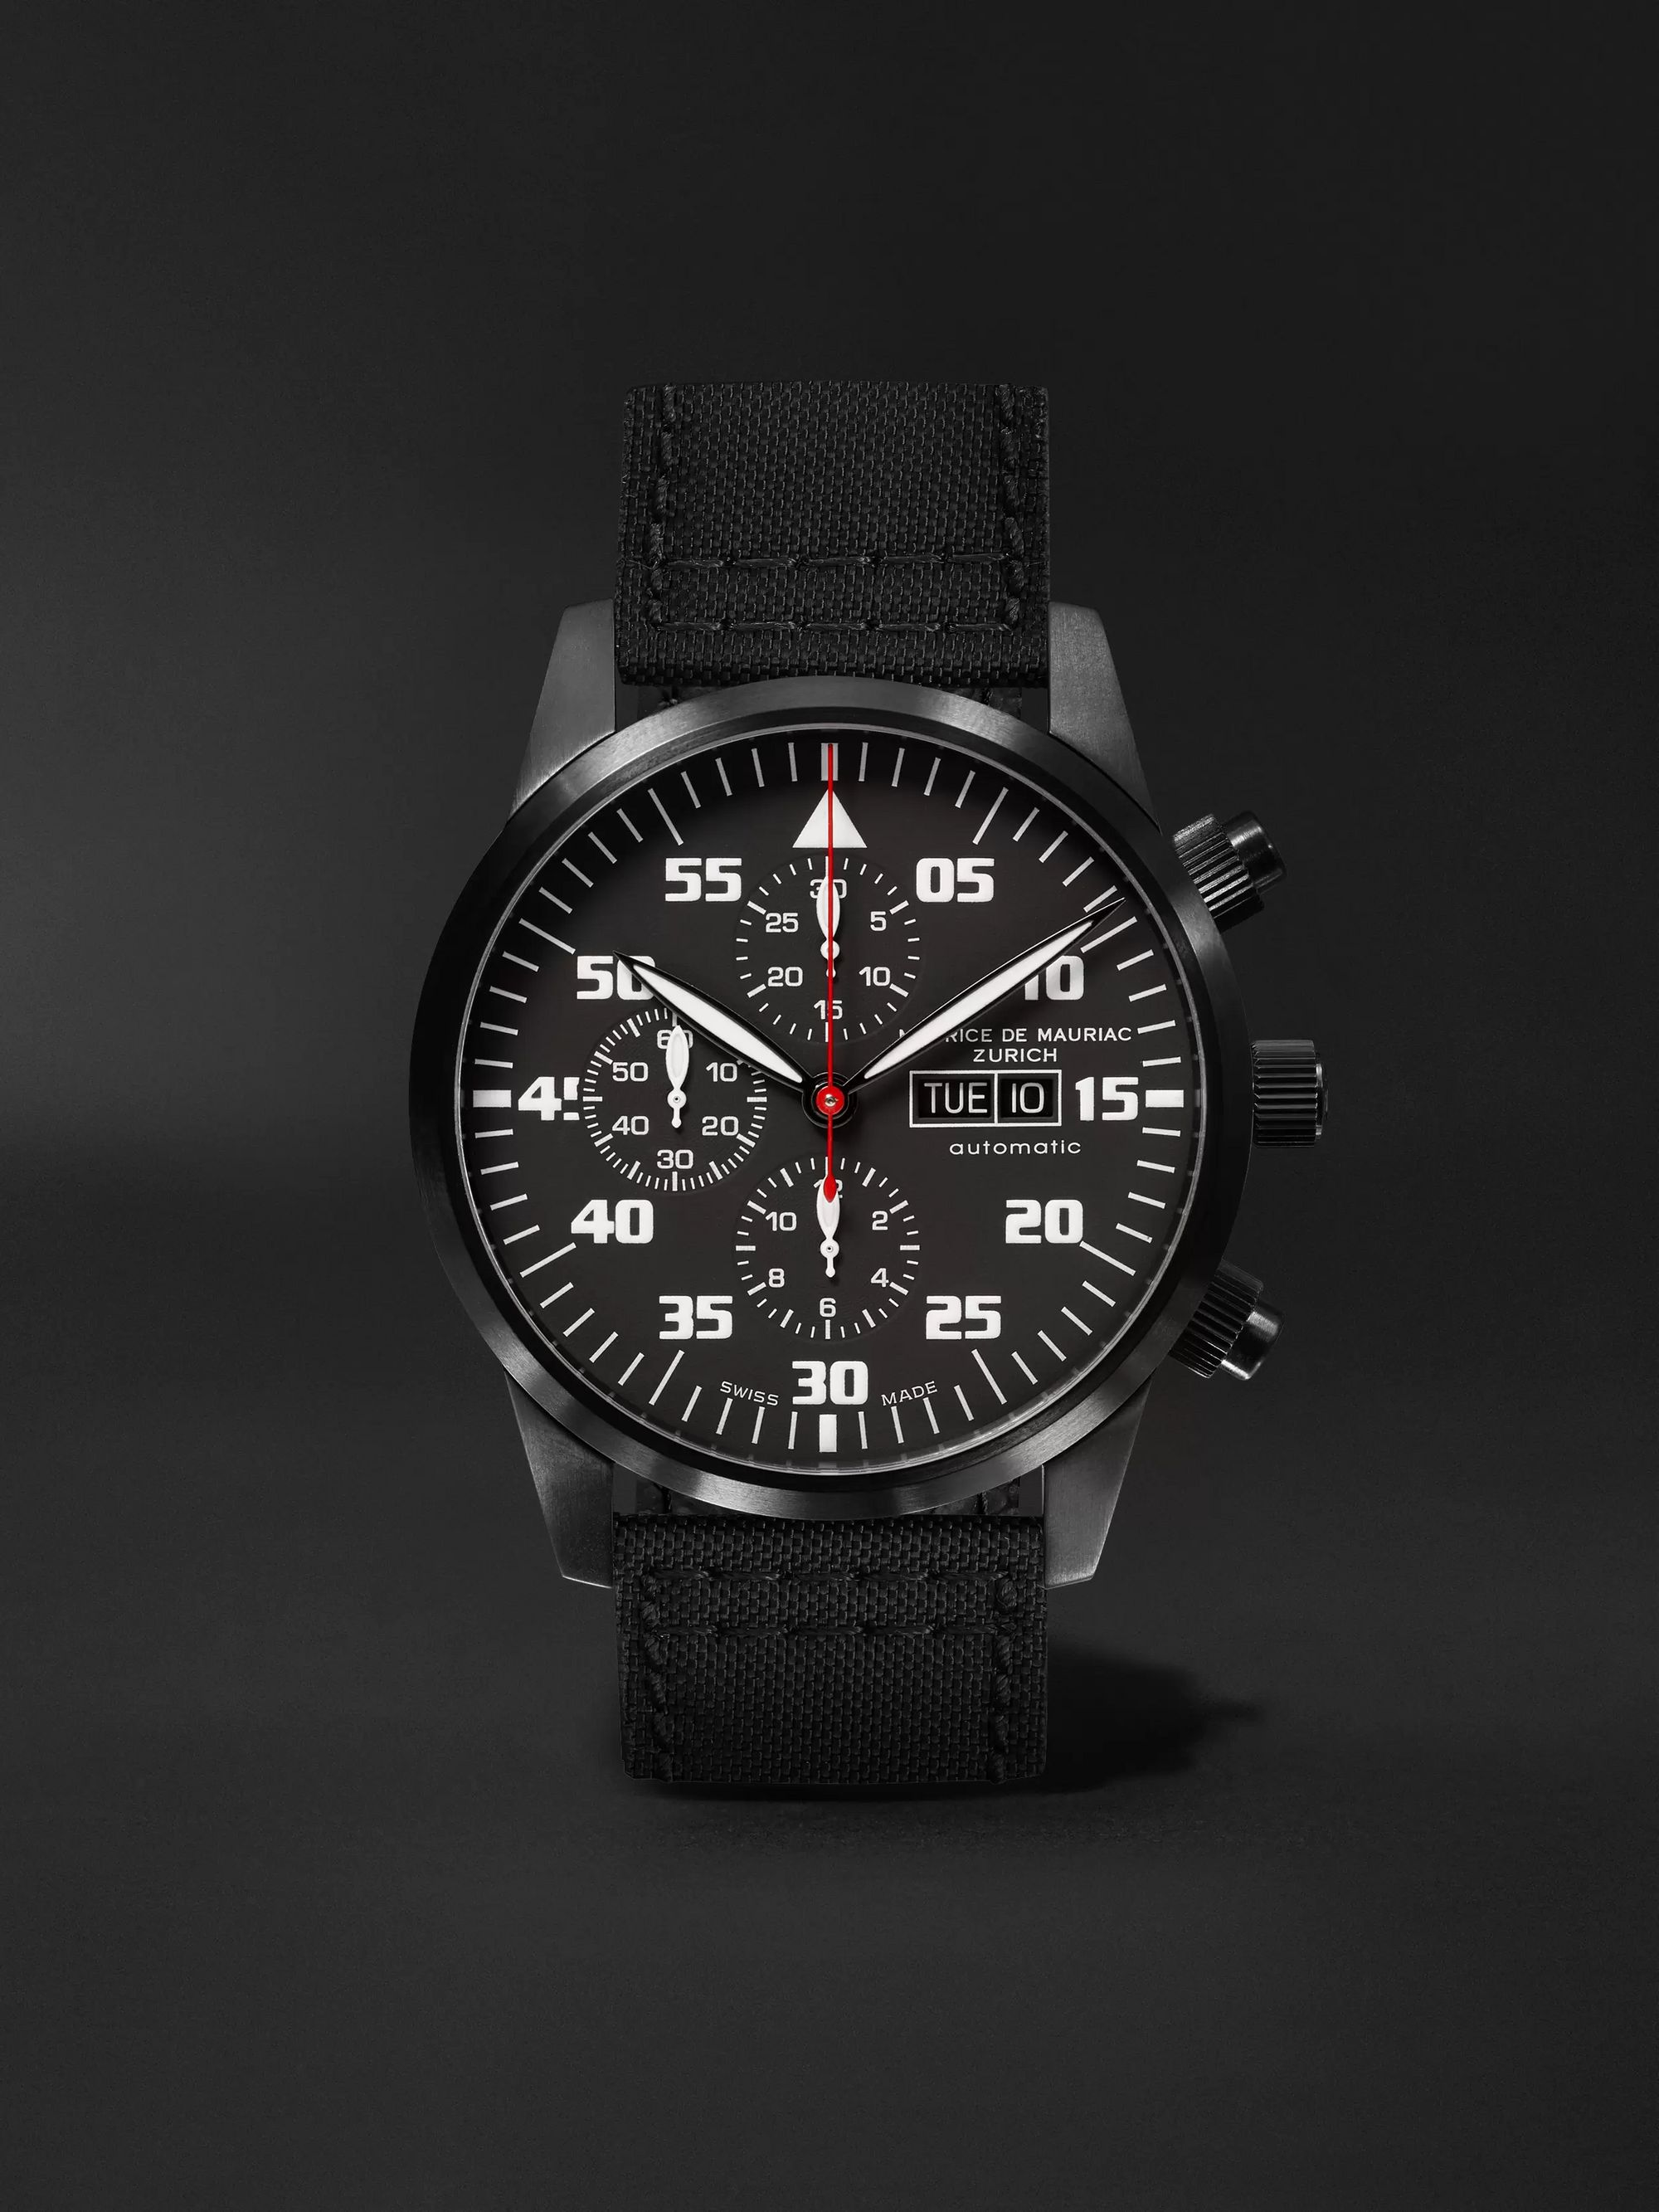 Maurice de Mauriac Zurich Automatic Chronograph 45mm PVD-Coated Stainless Steel and Kevlar Watch, Ref. No. CH MO 034 06 L